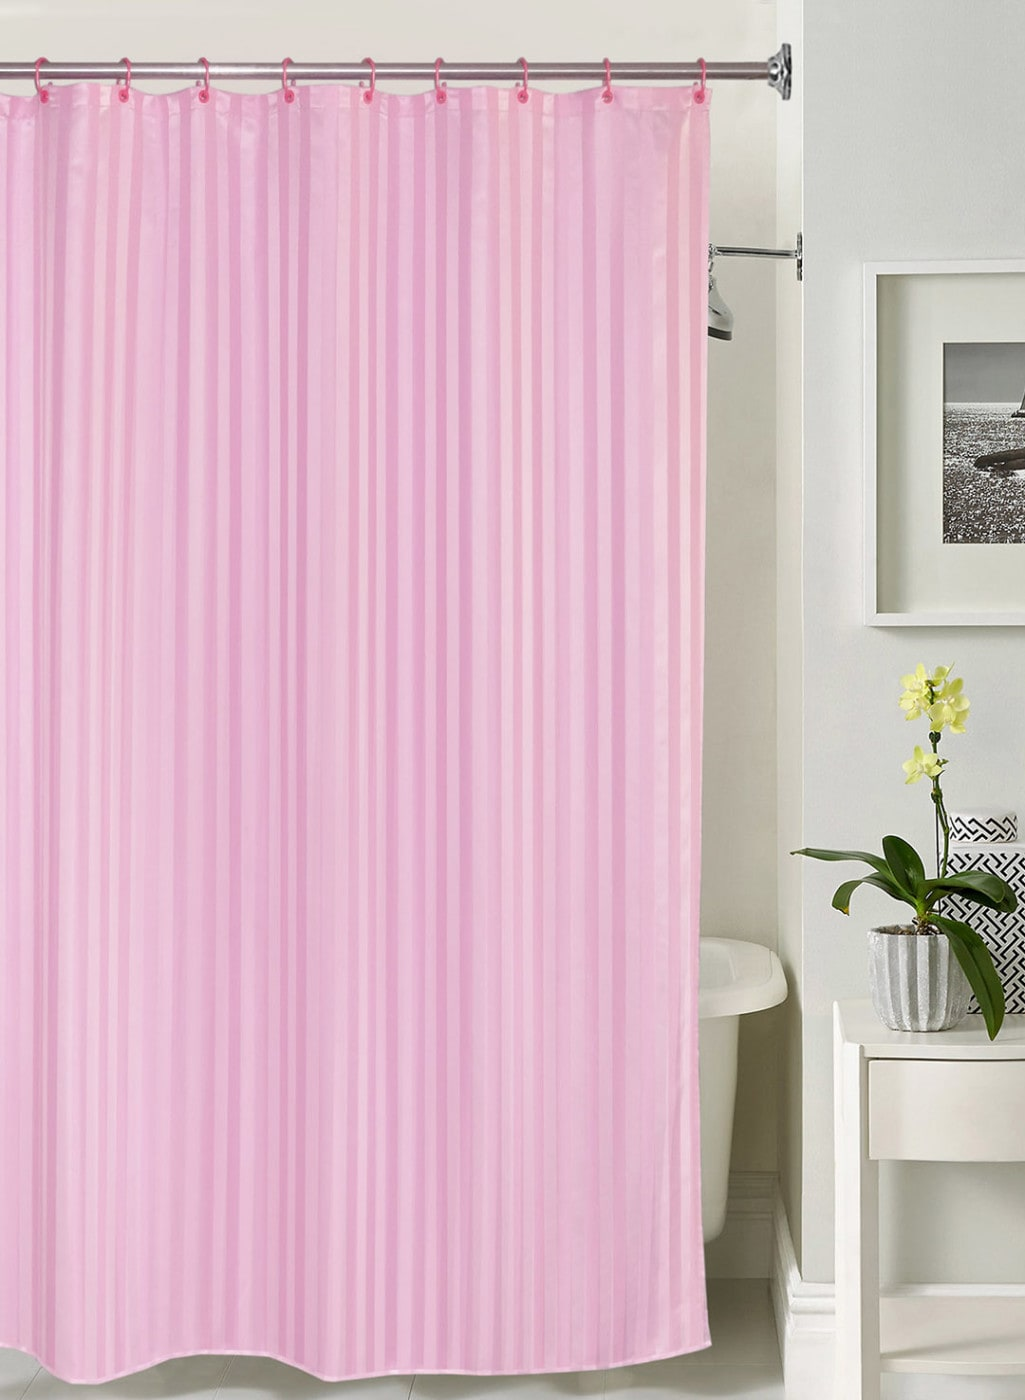 Lushomes Pink Striped Shower Curtain